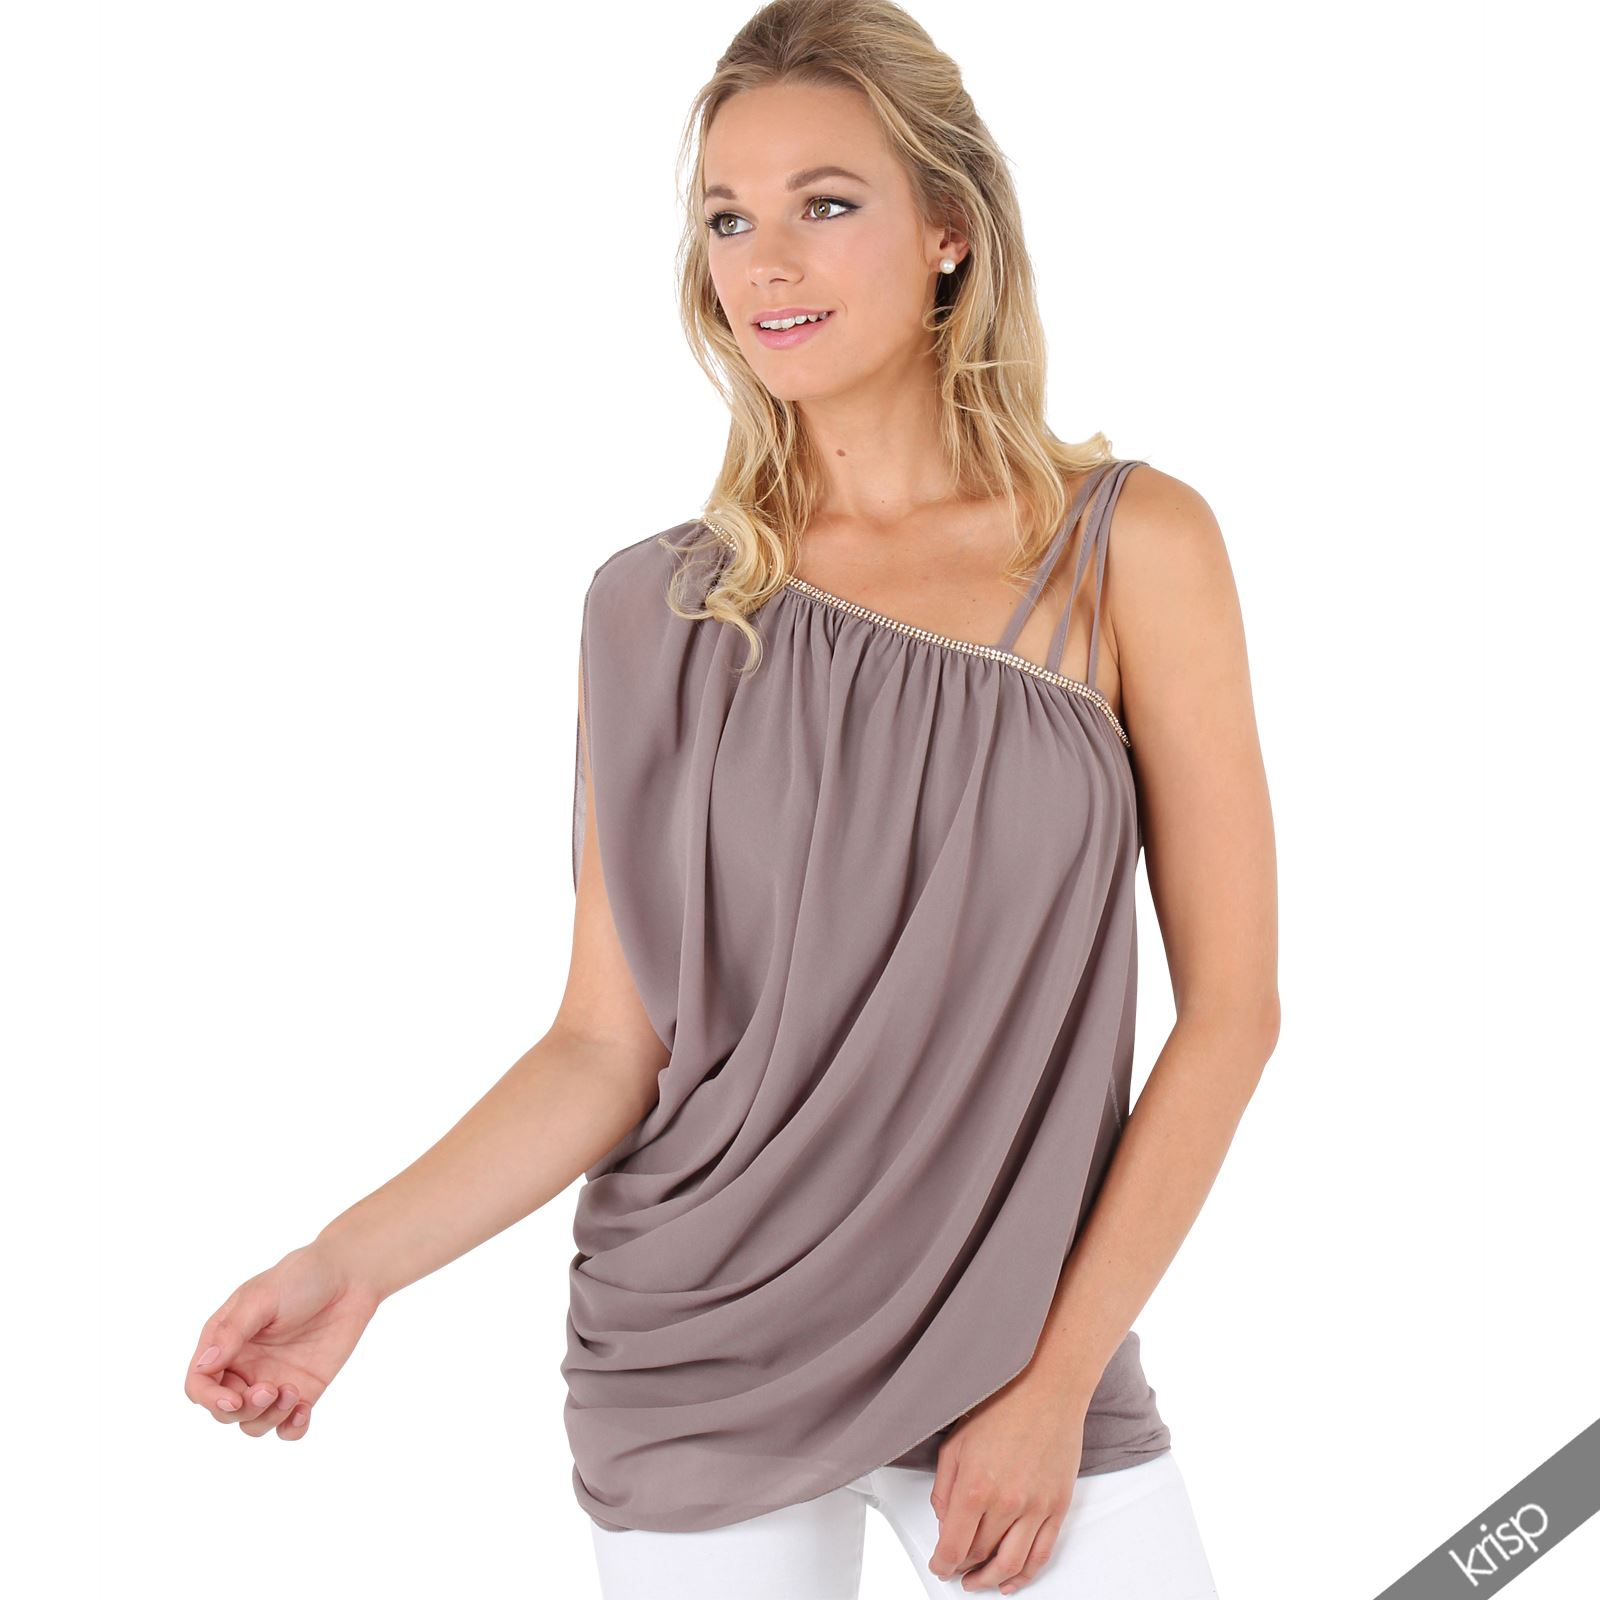 Women's tops are a must have item to cover a women body! There are so many varieties of cheap women's tops on our site that you will be left awe struck when you are going around viewing the items.